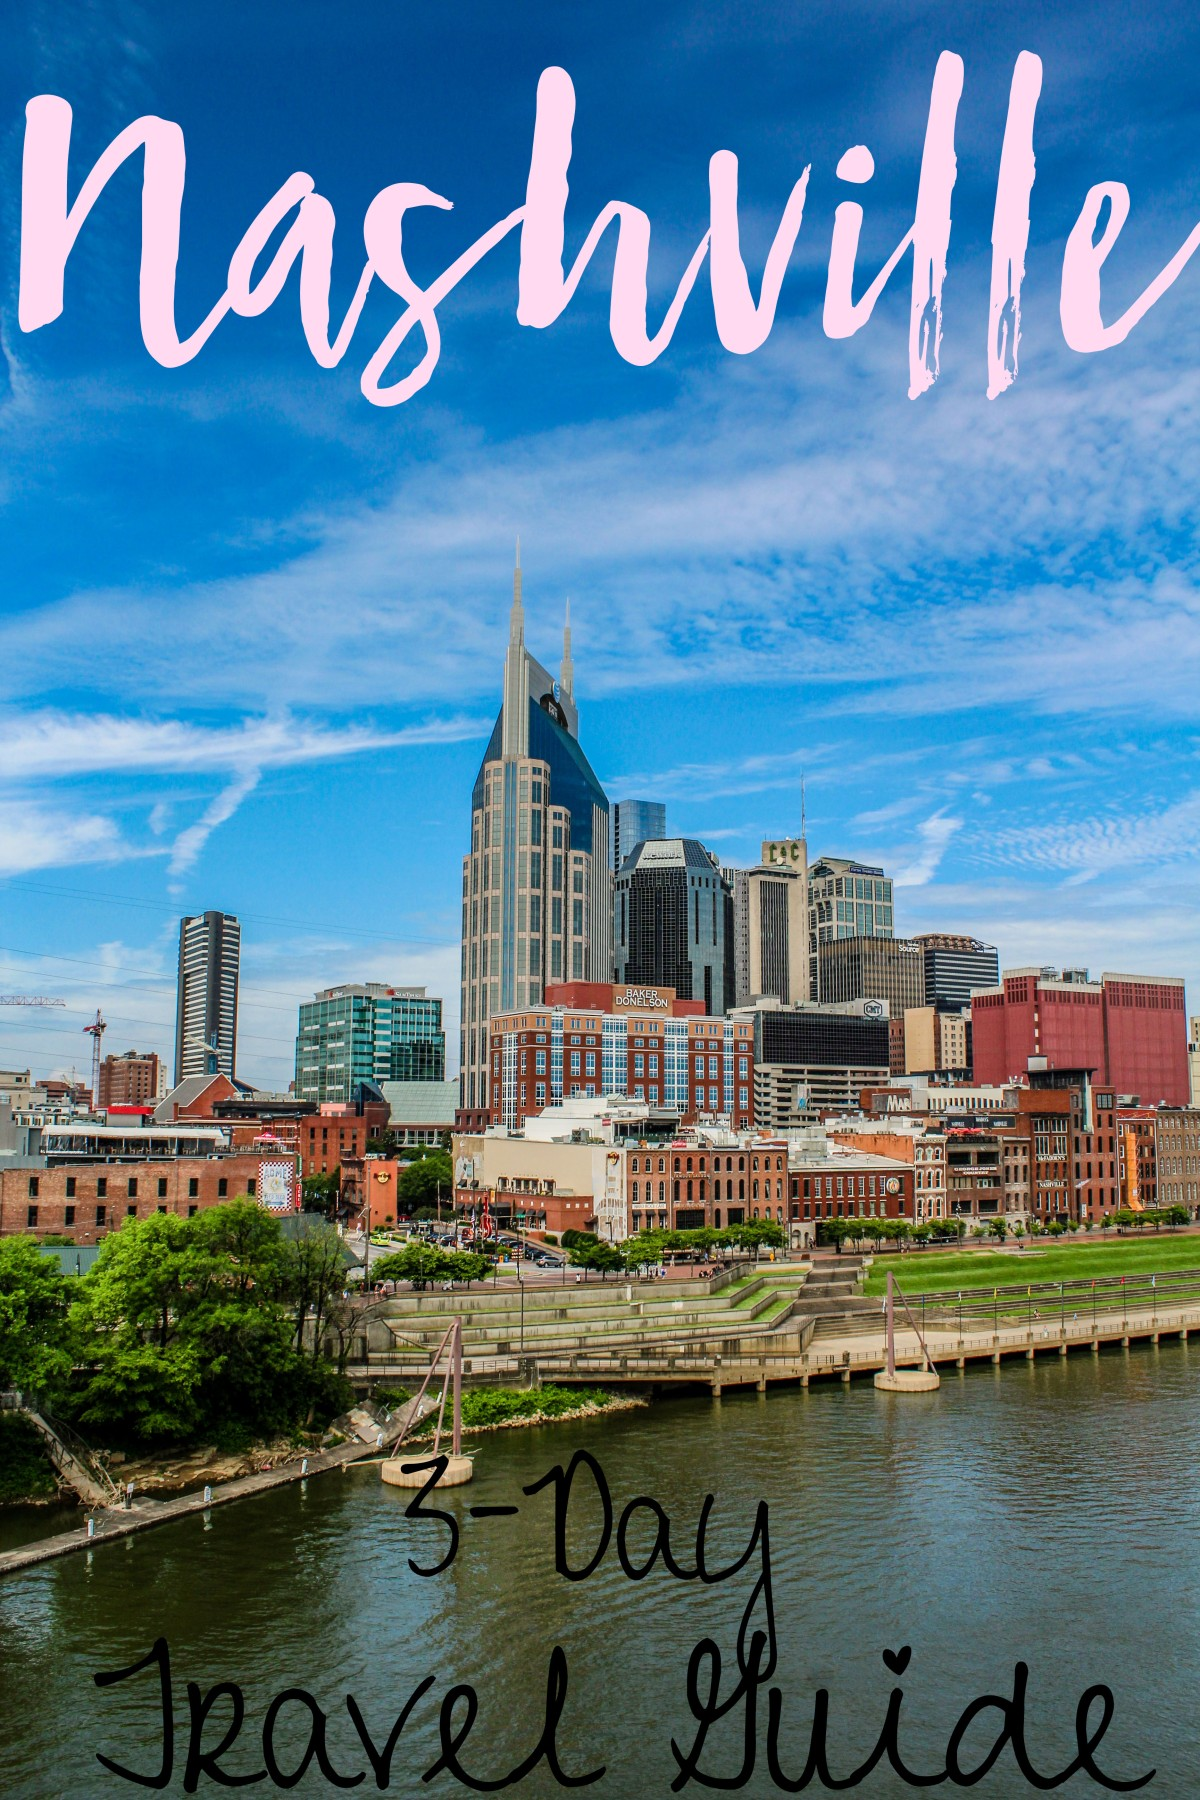 Nashville 3-Day Travel Guide